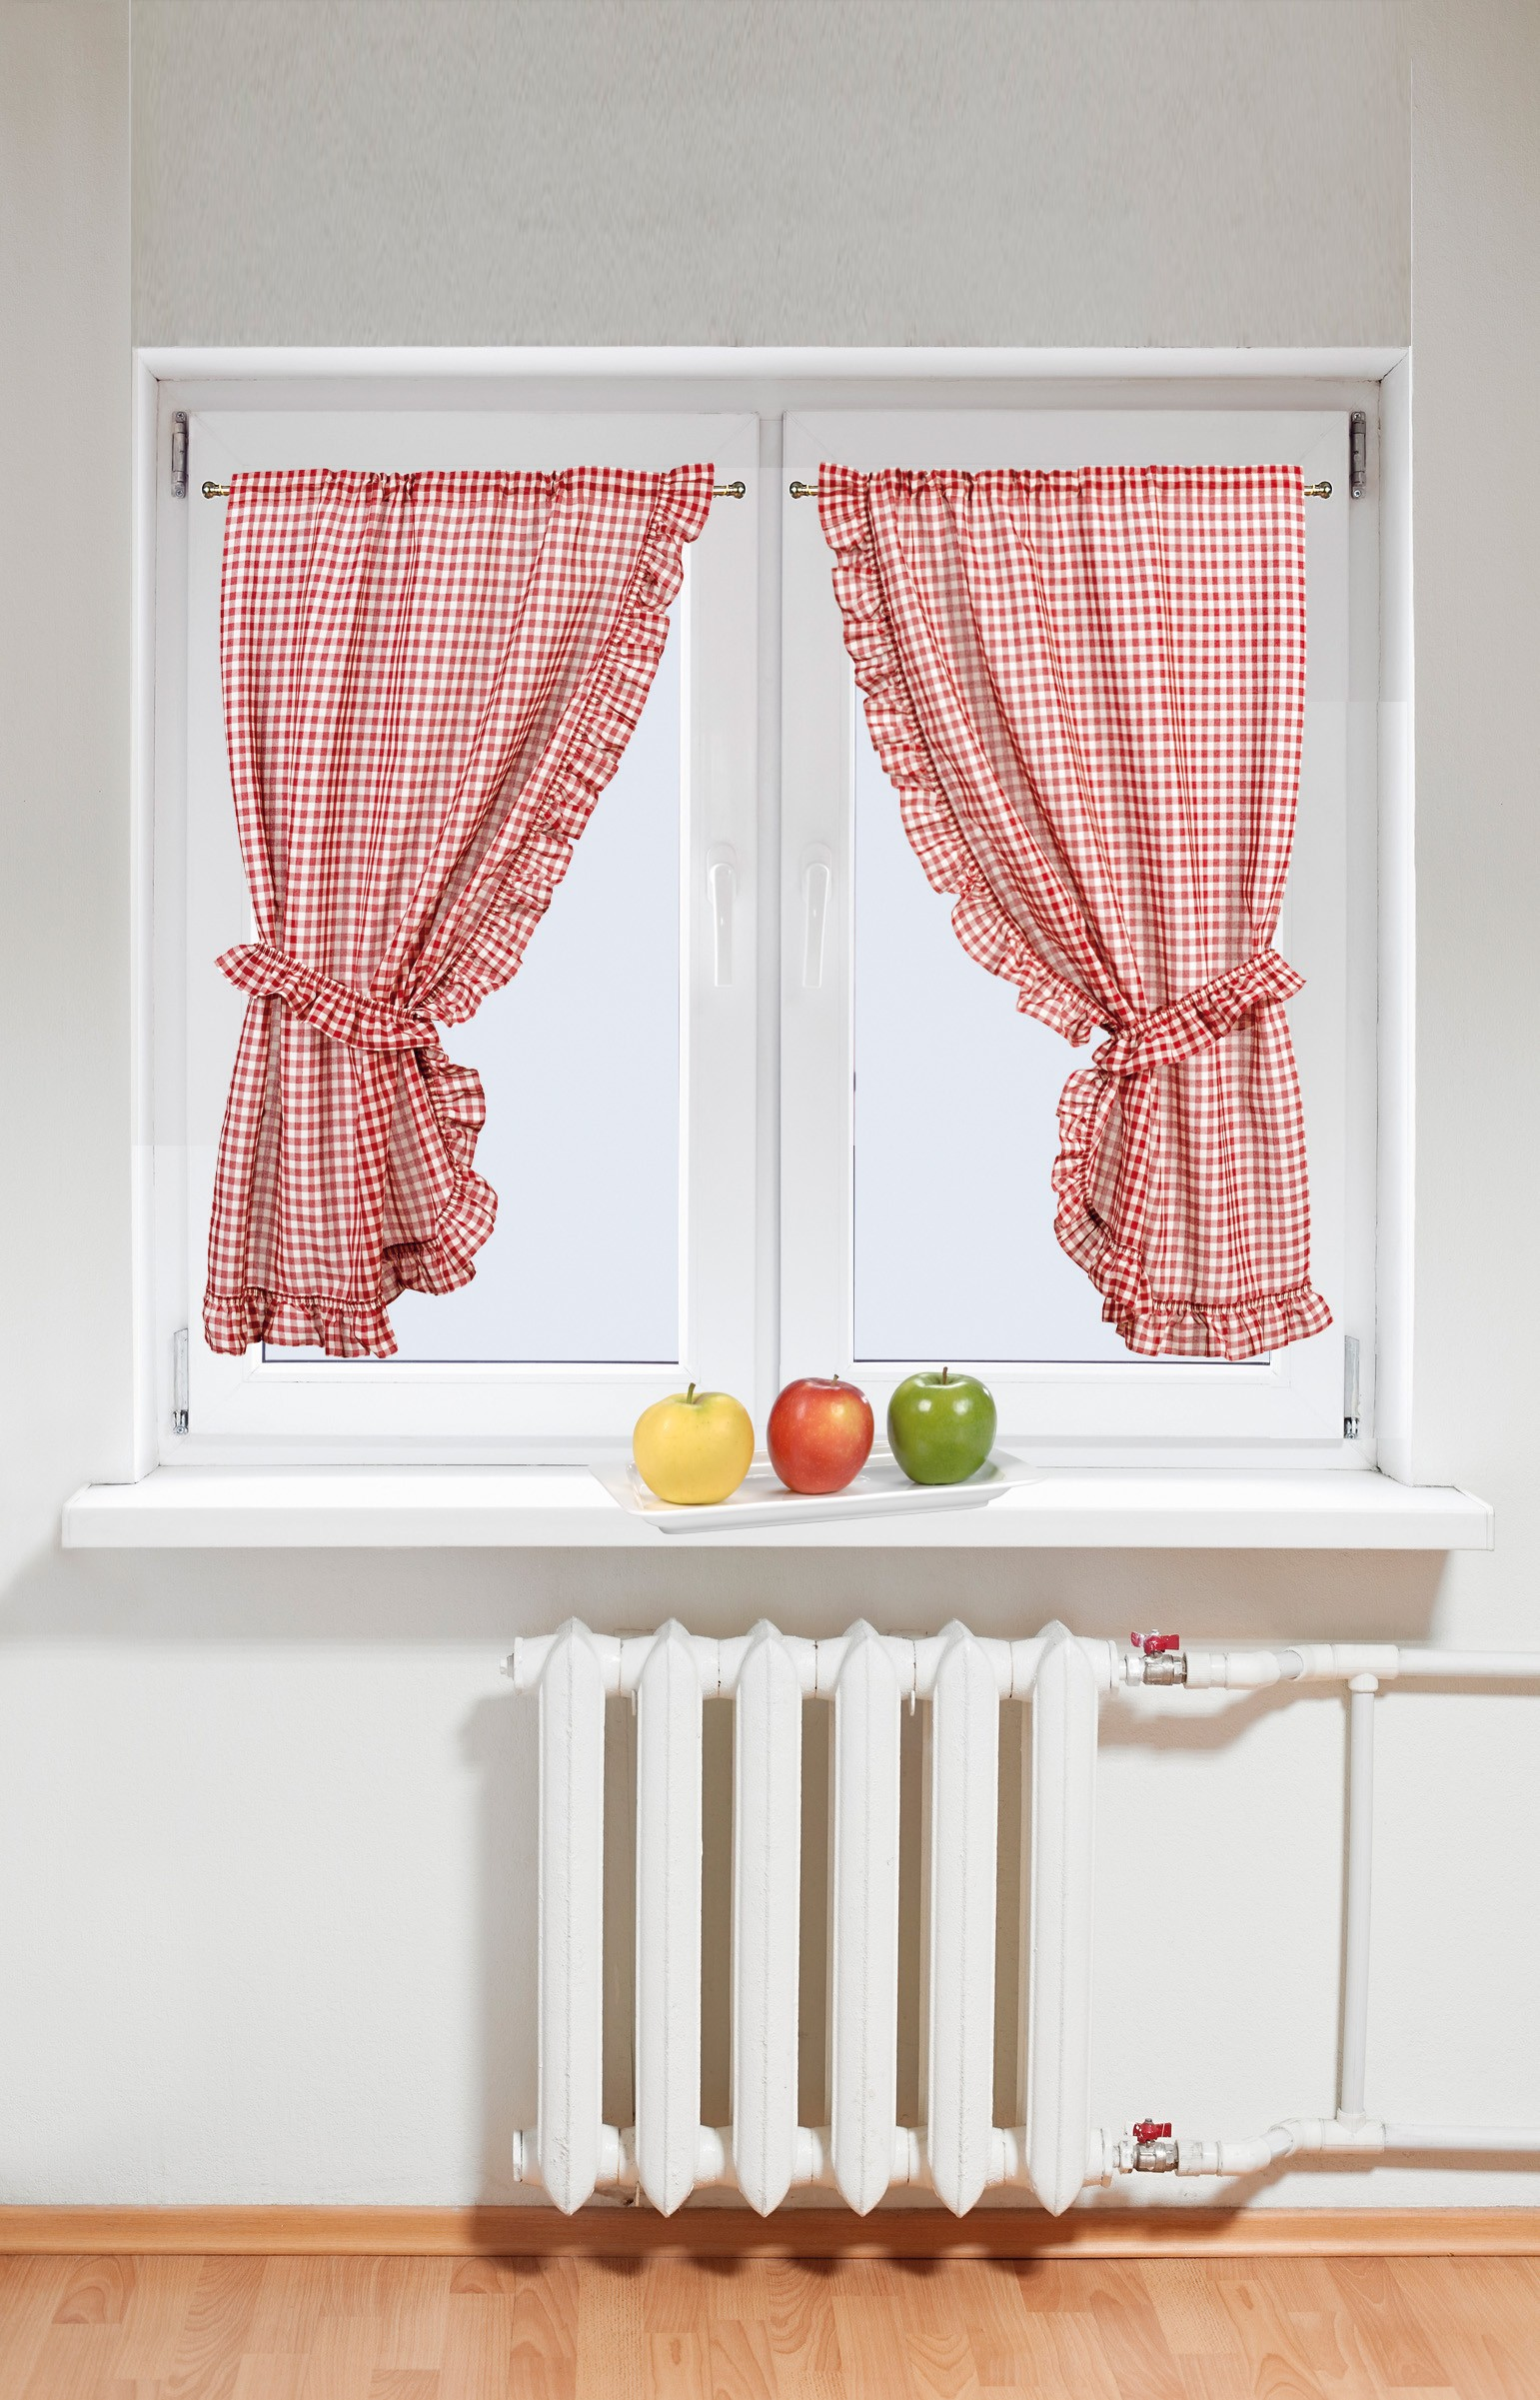 rideaux pour cuisine rouge retro window curtains rouge. Black Bedroom Furniture Sets. Home Design Ideas